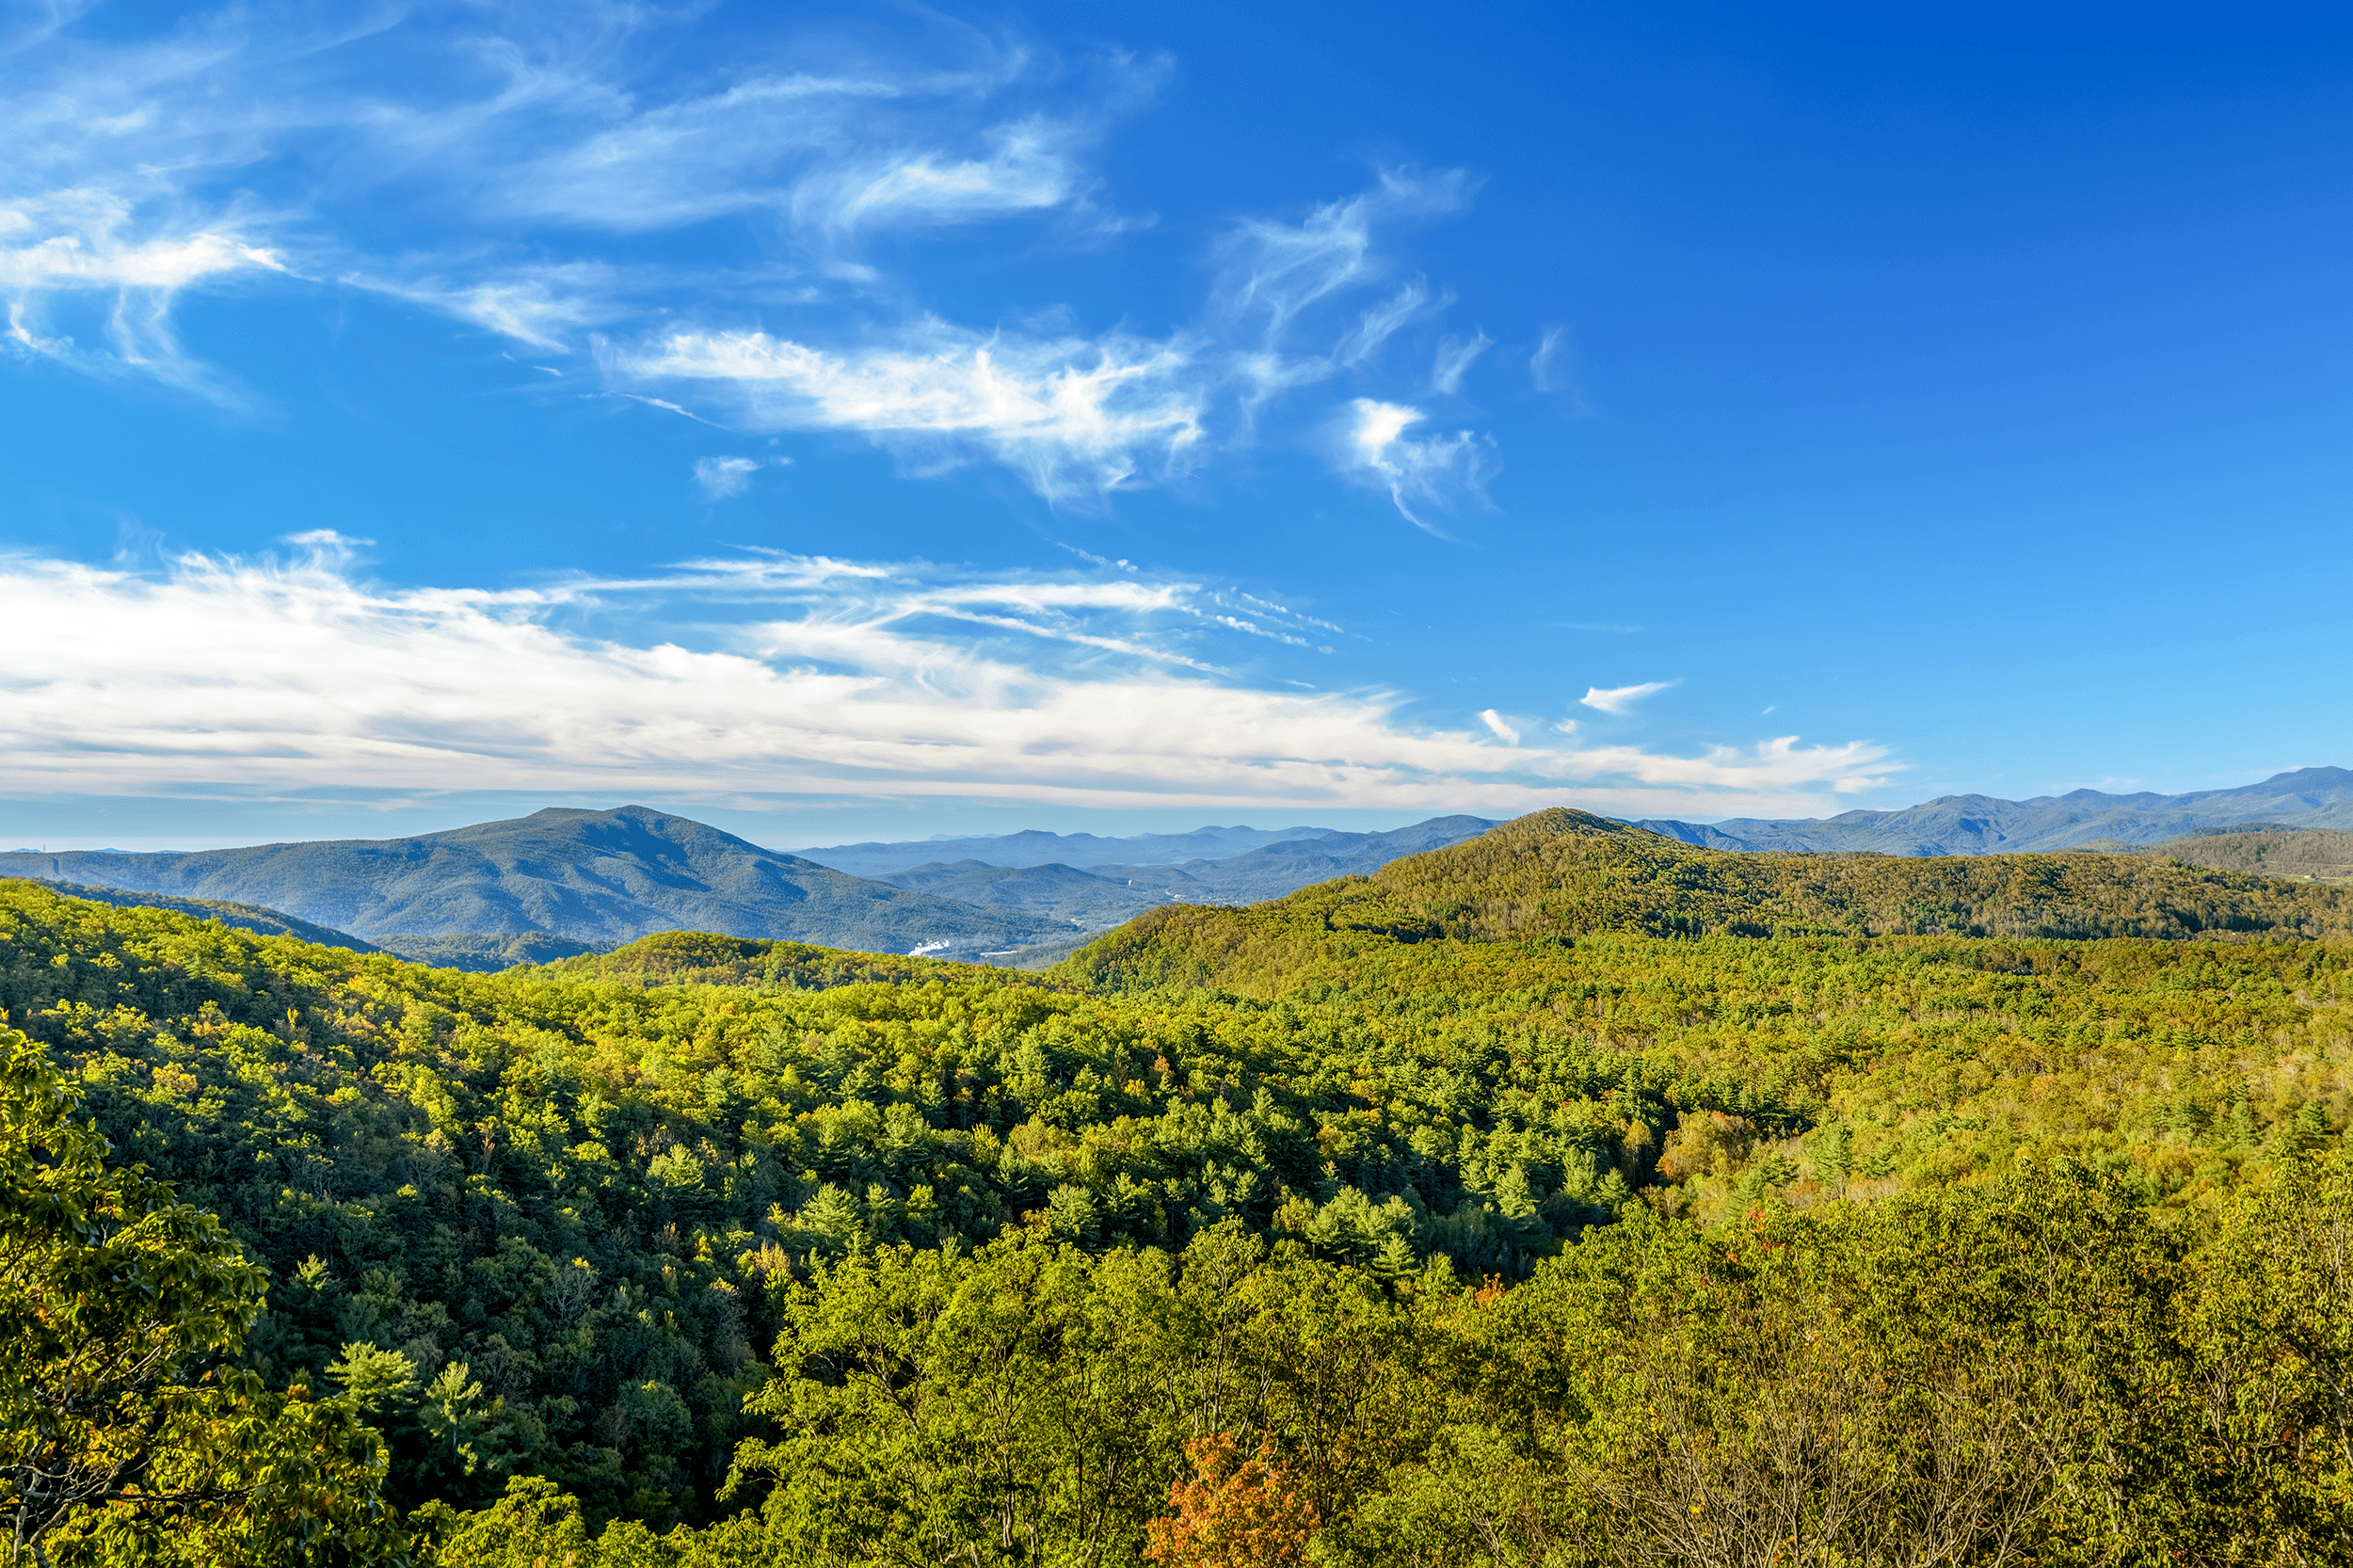 Bear Den Overlook : On the left of the panorama is  Dobson Knob  (3,694 feet - 1,126 meters). The historic  Overmountain Victory Trail  runs to the east of  Dobson Knob . The  Overmountain Men  took this trail during the  American Revolutionary War  (1775-1783) to face the advancing British troops. In the  Battle of Kings Mountain  on October 7, 1780, the British suffered a surprising defeat, which probably played a large part in the outcome of the war.